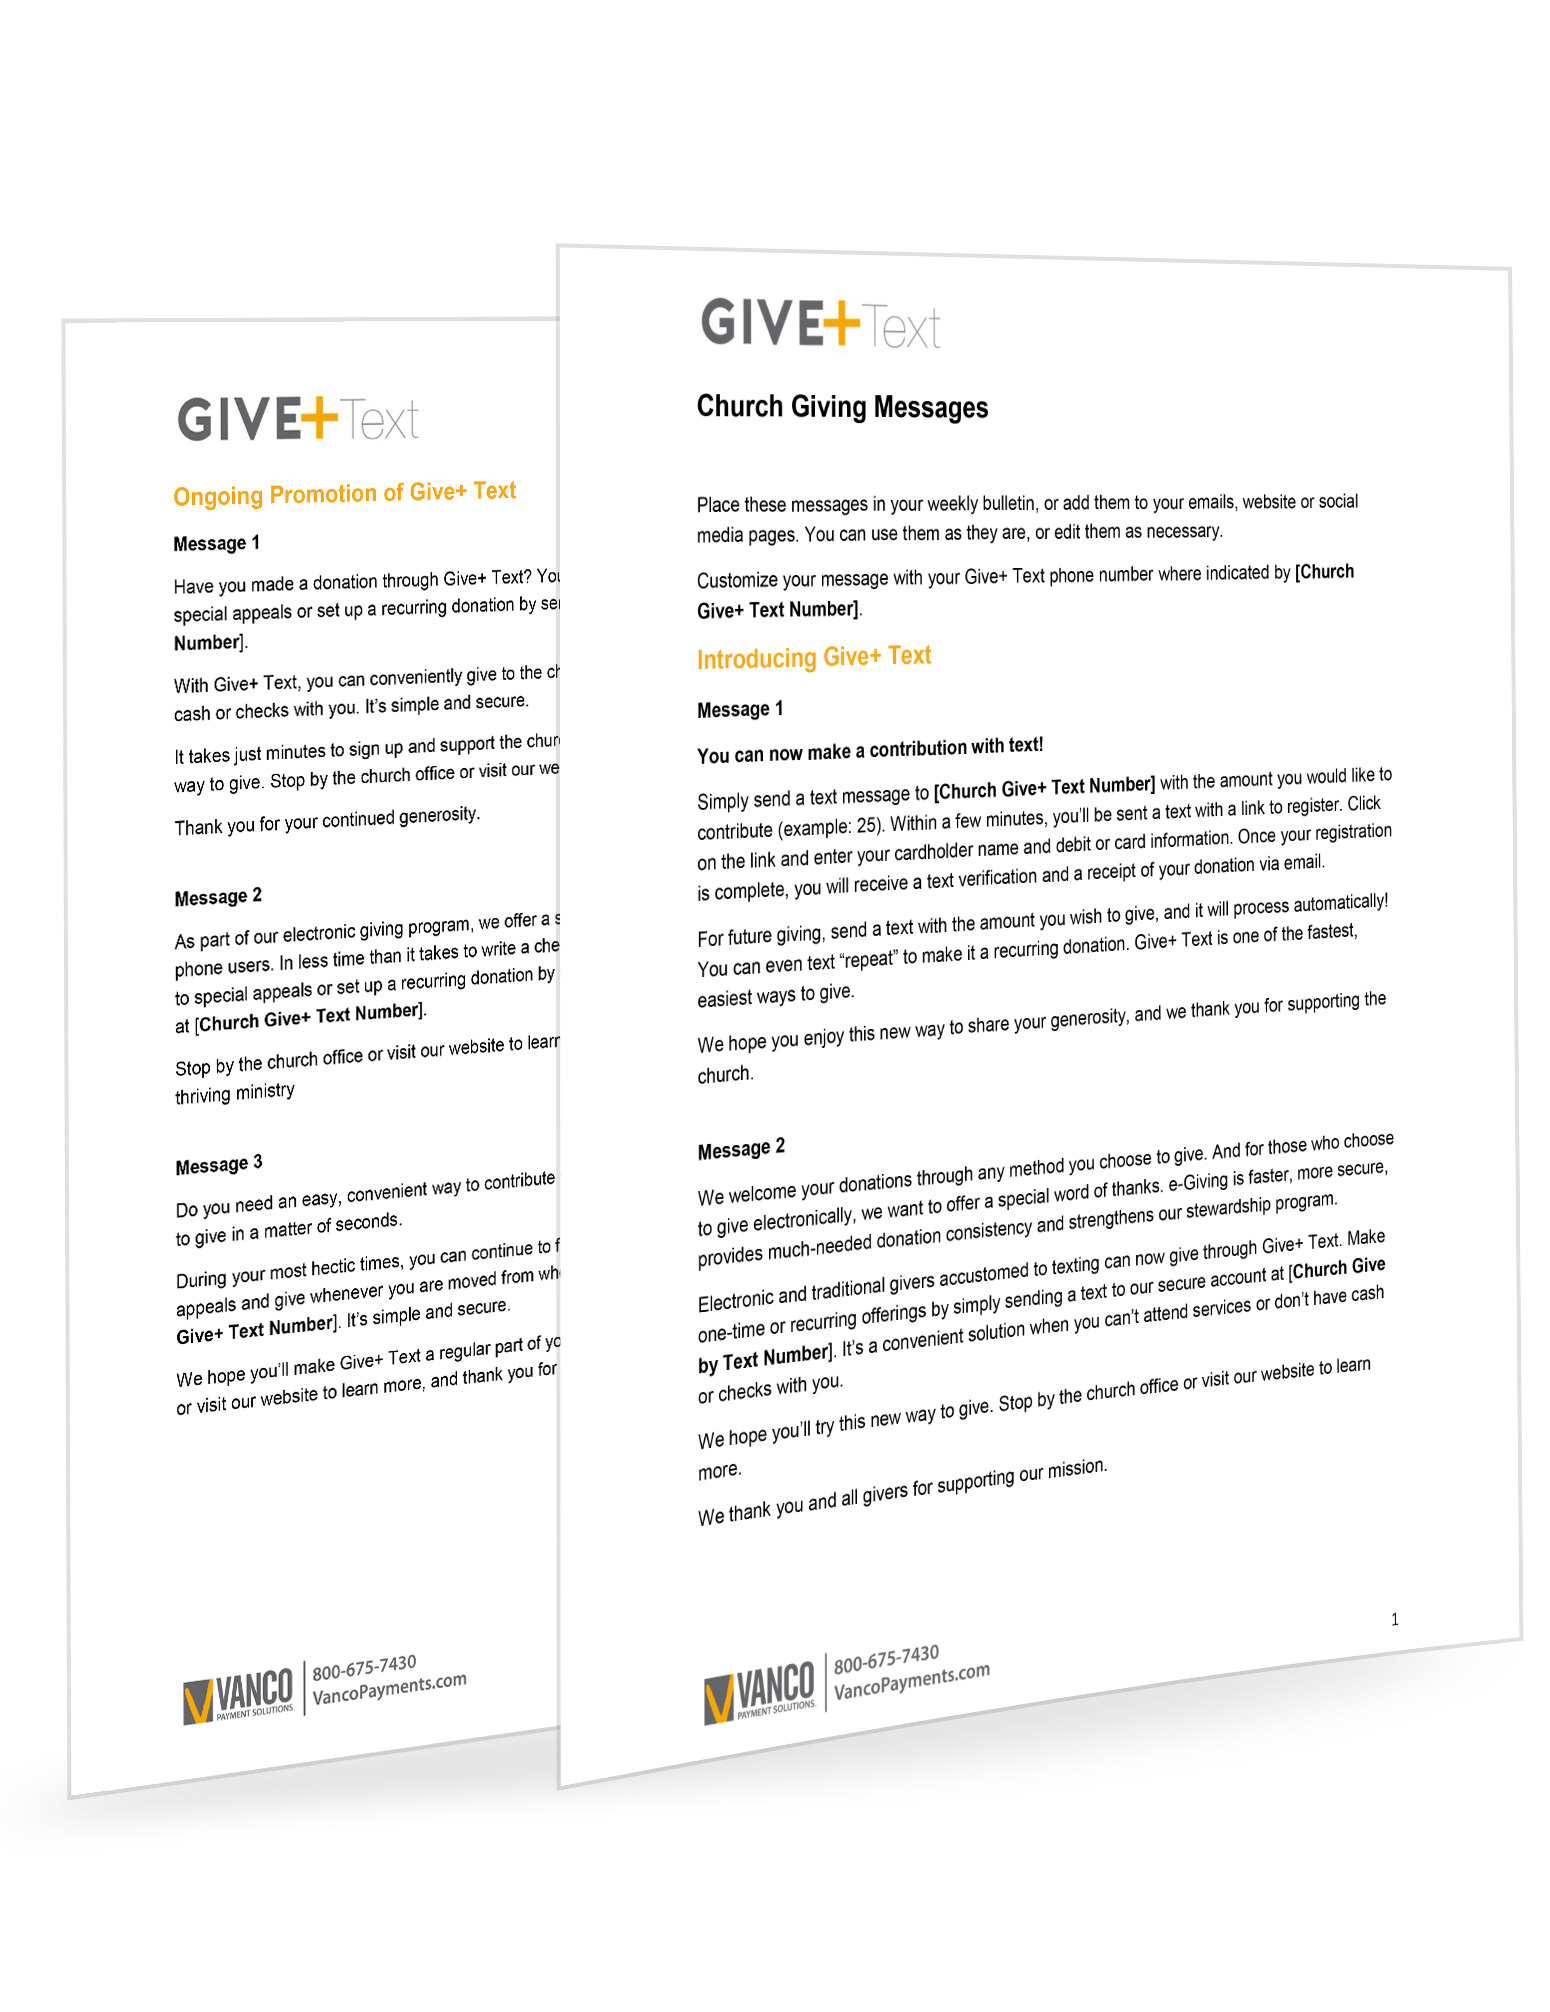 GivePlus Text Member Messages